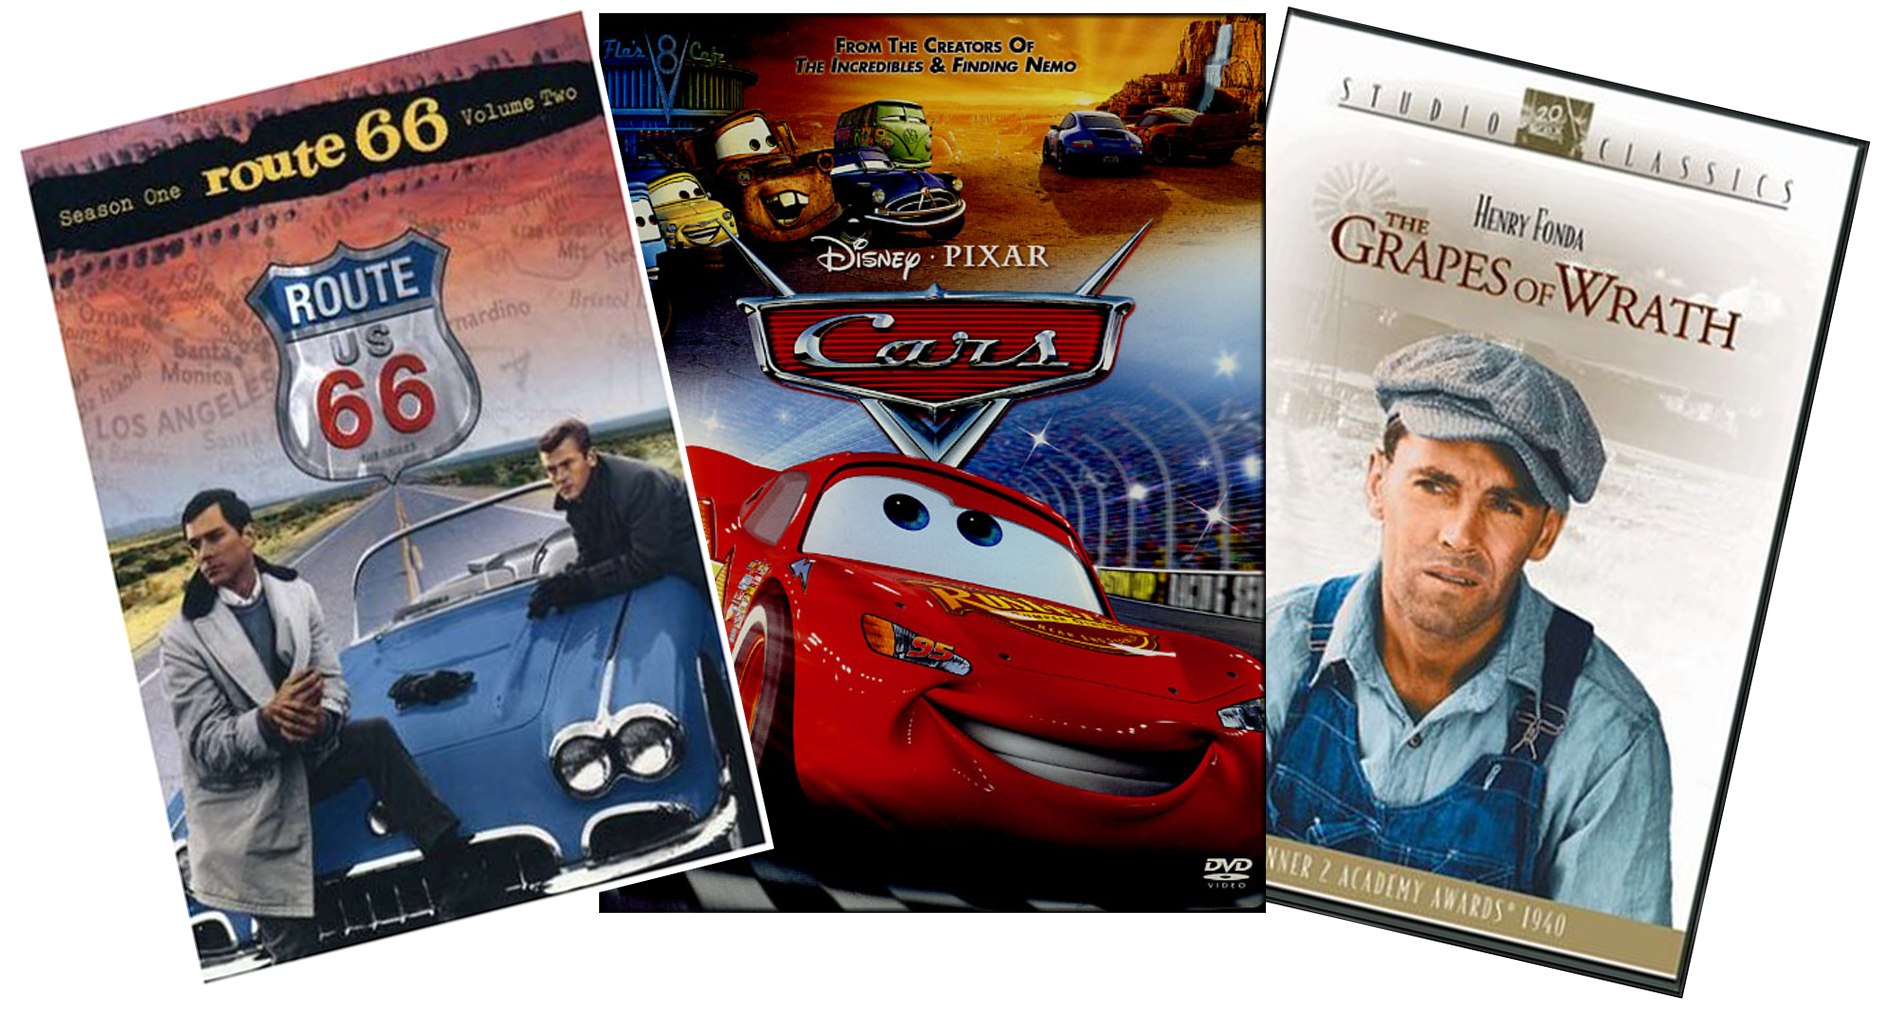 Route 66 TV Series, Cars, and the Grapes of Wrath